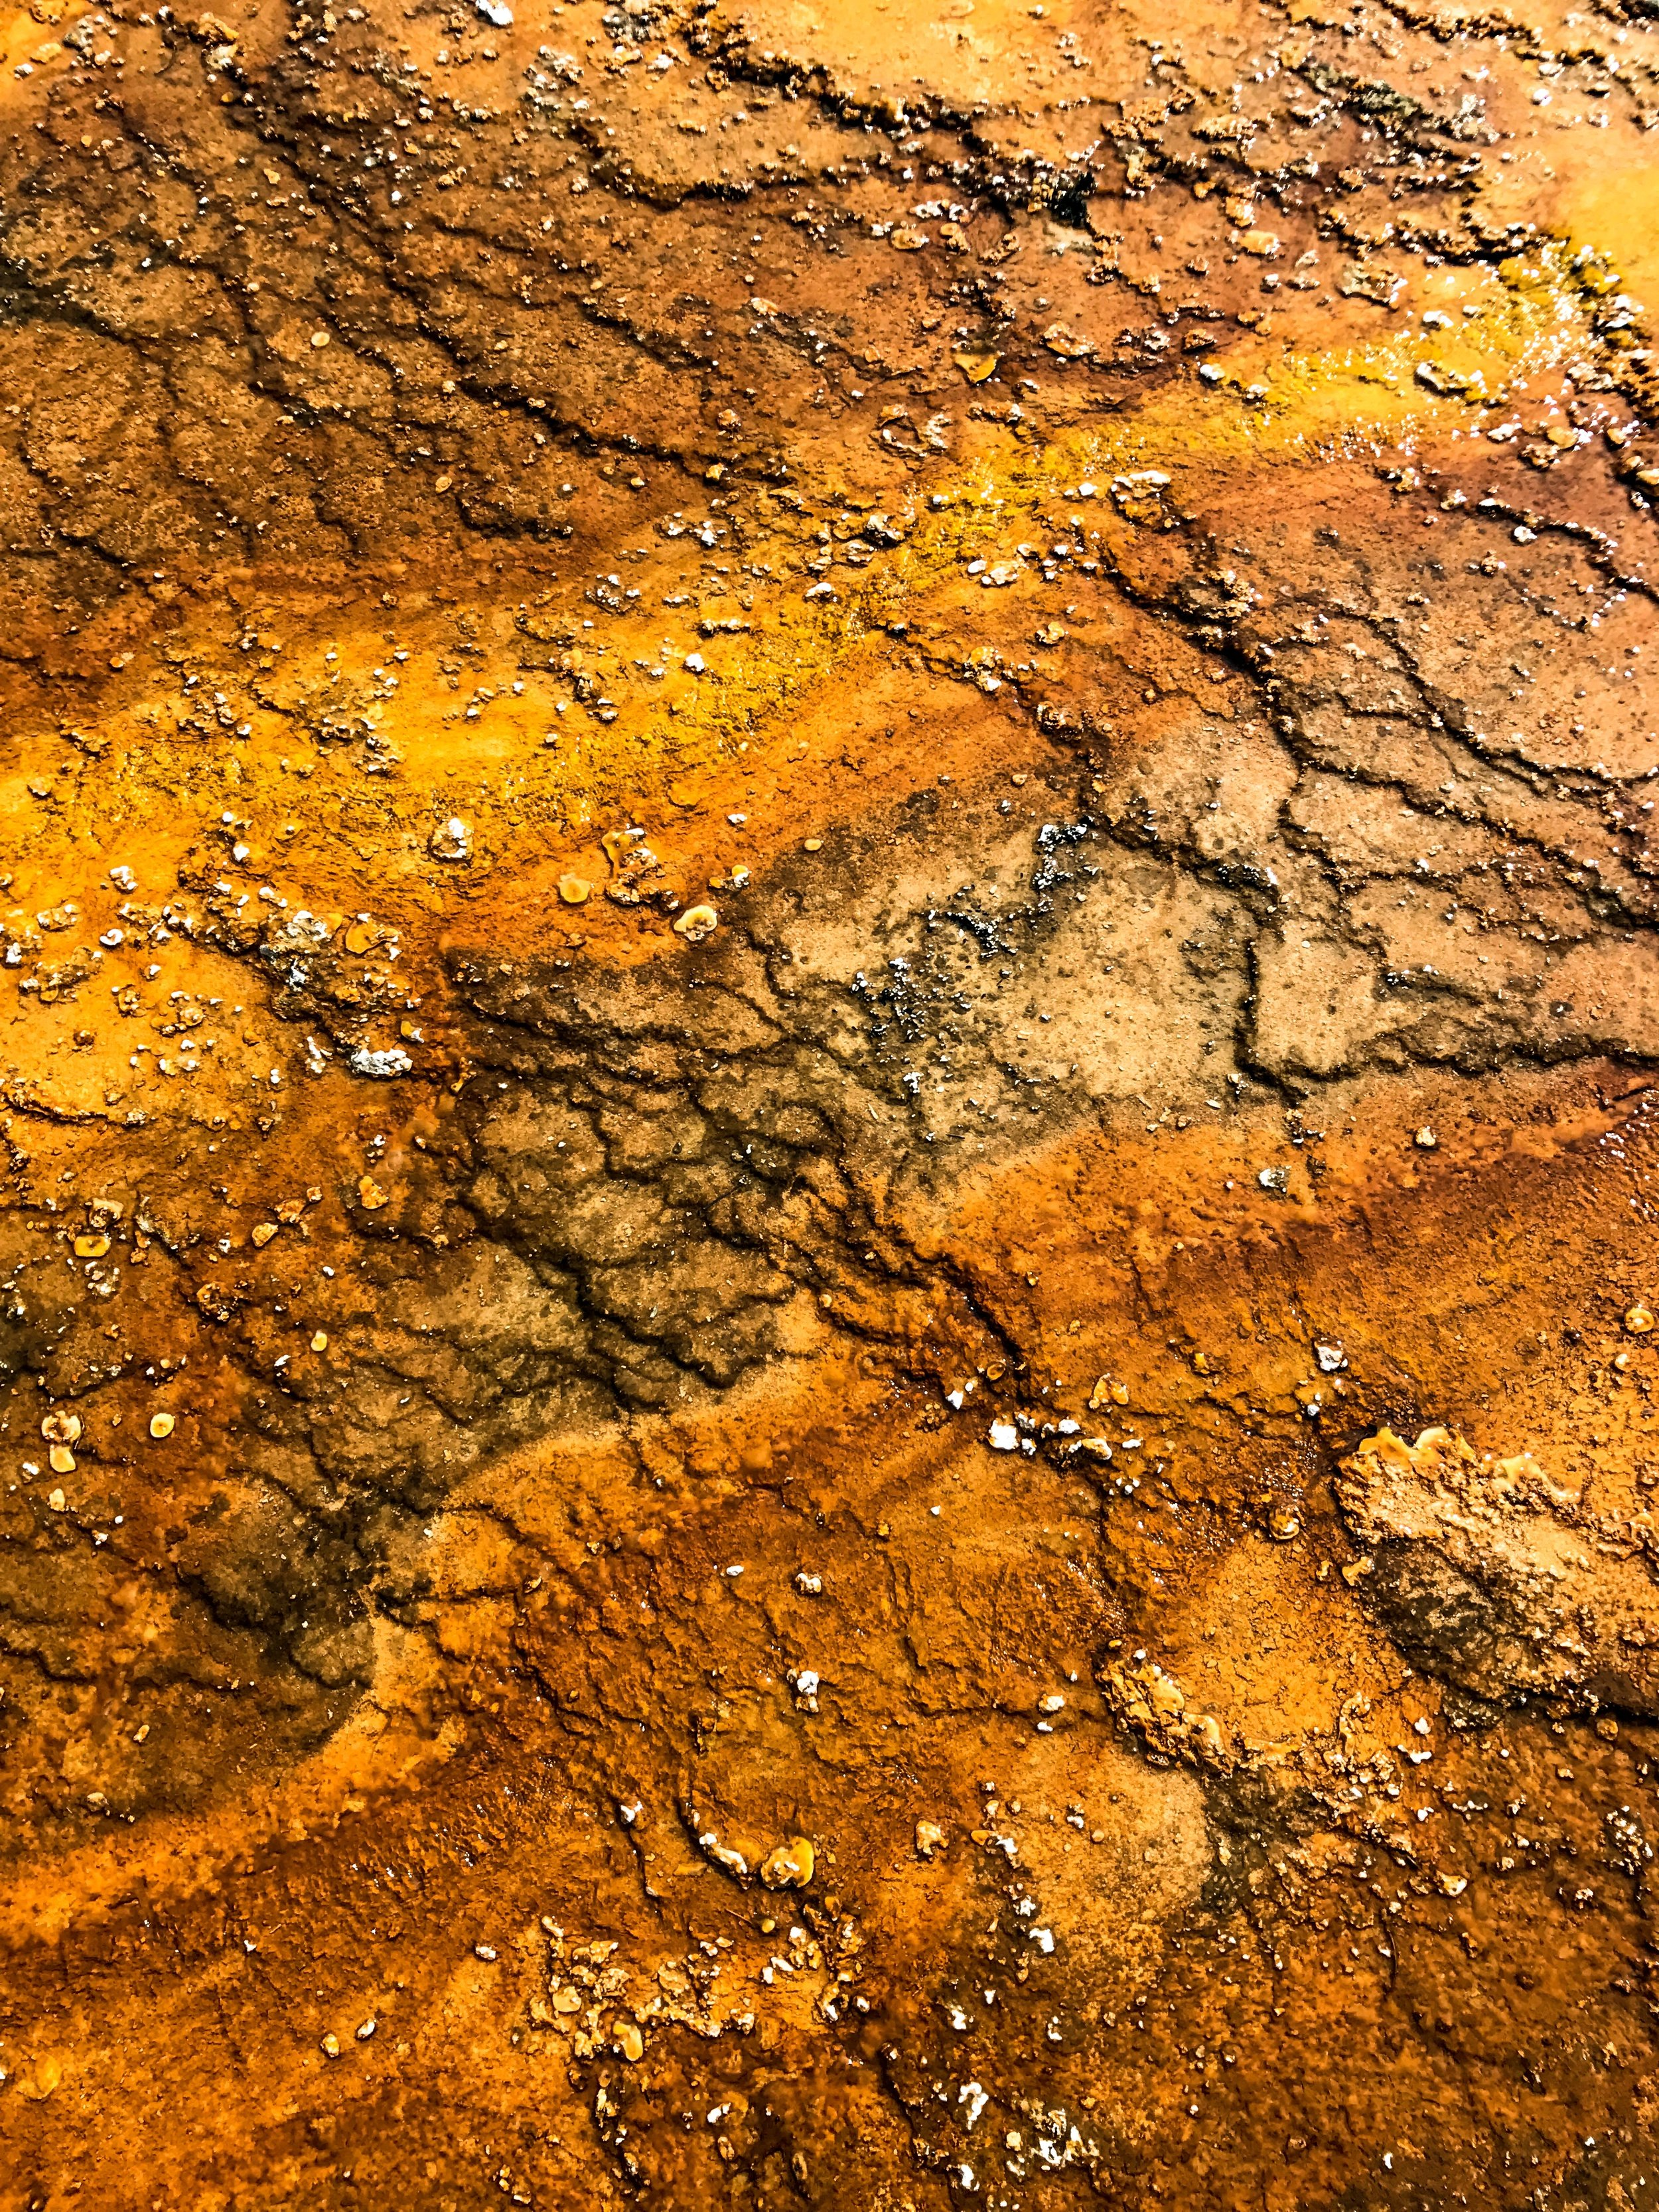 Seriously... is this the surface of mars?